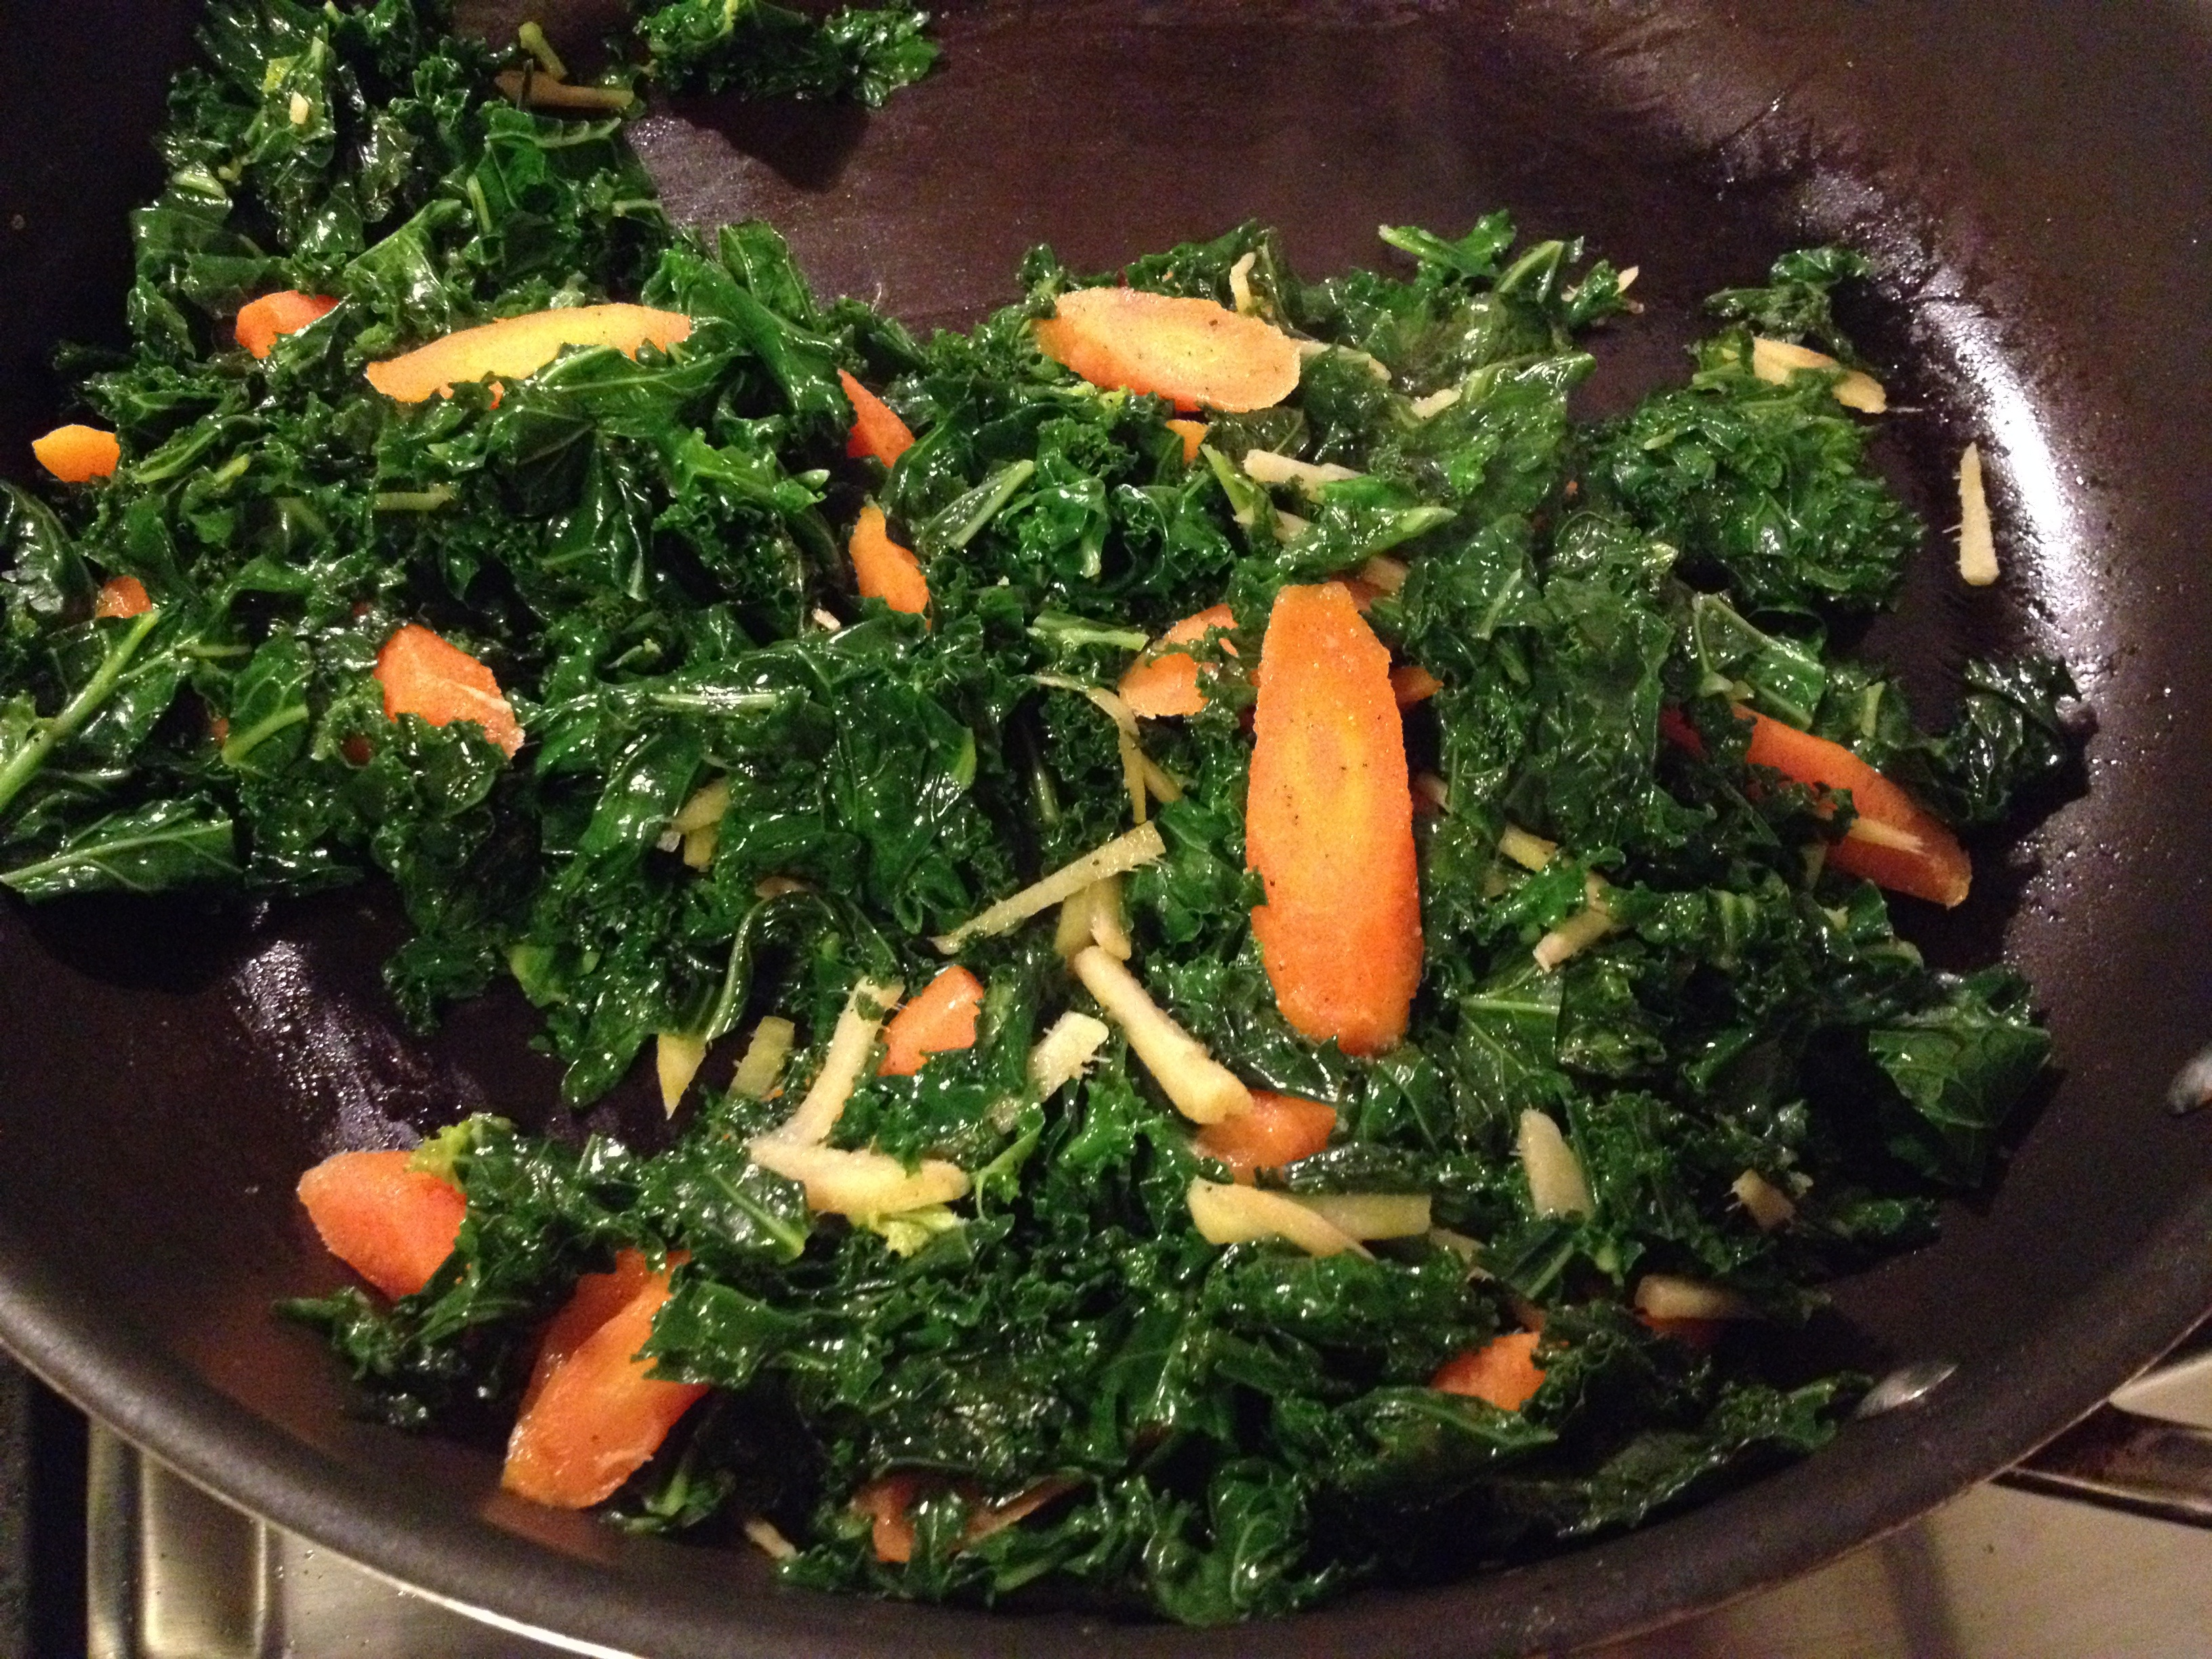 Kale with ginger and carrots in skillet.